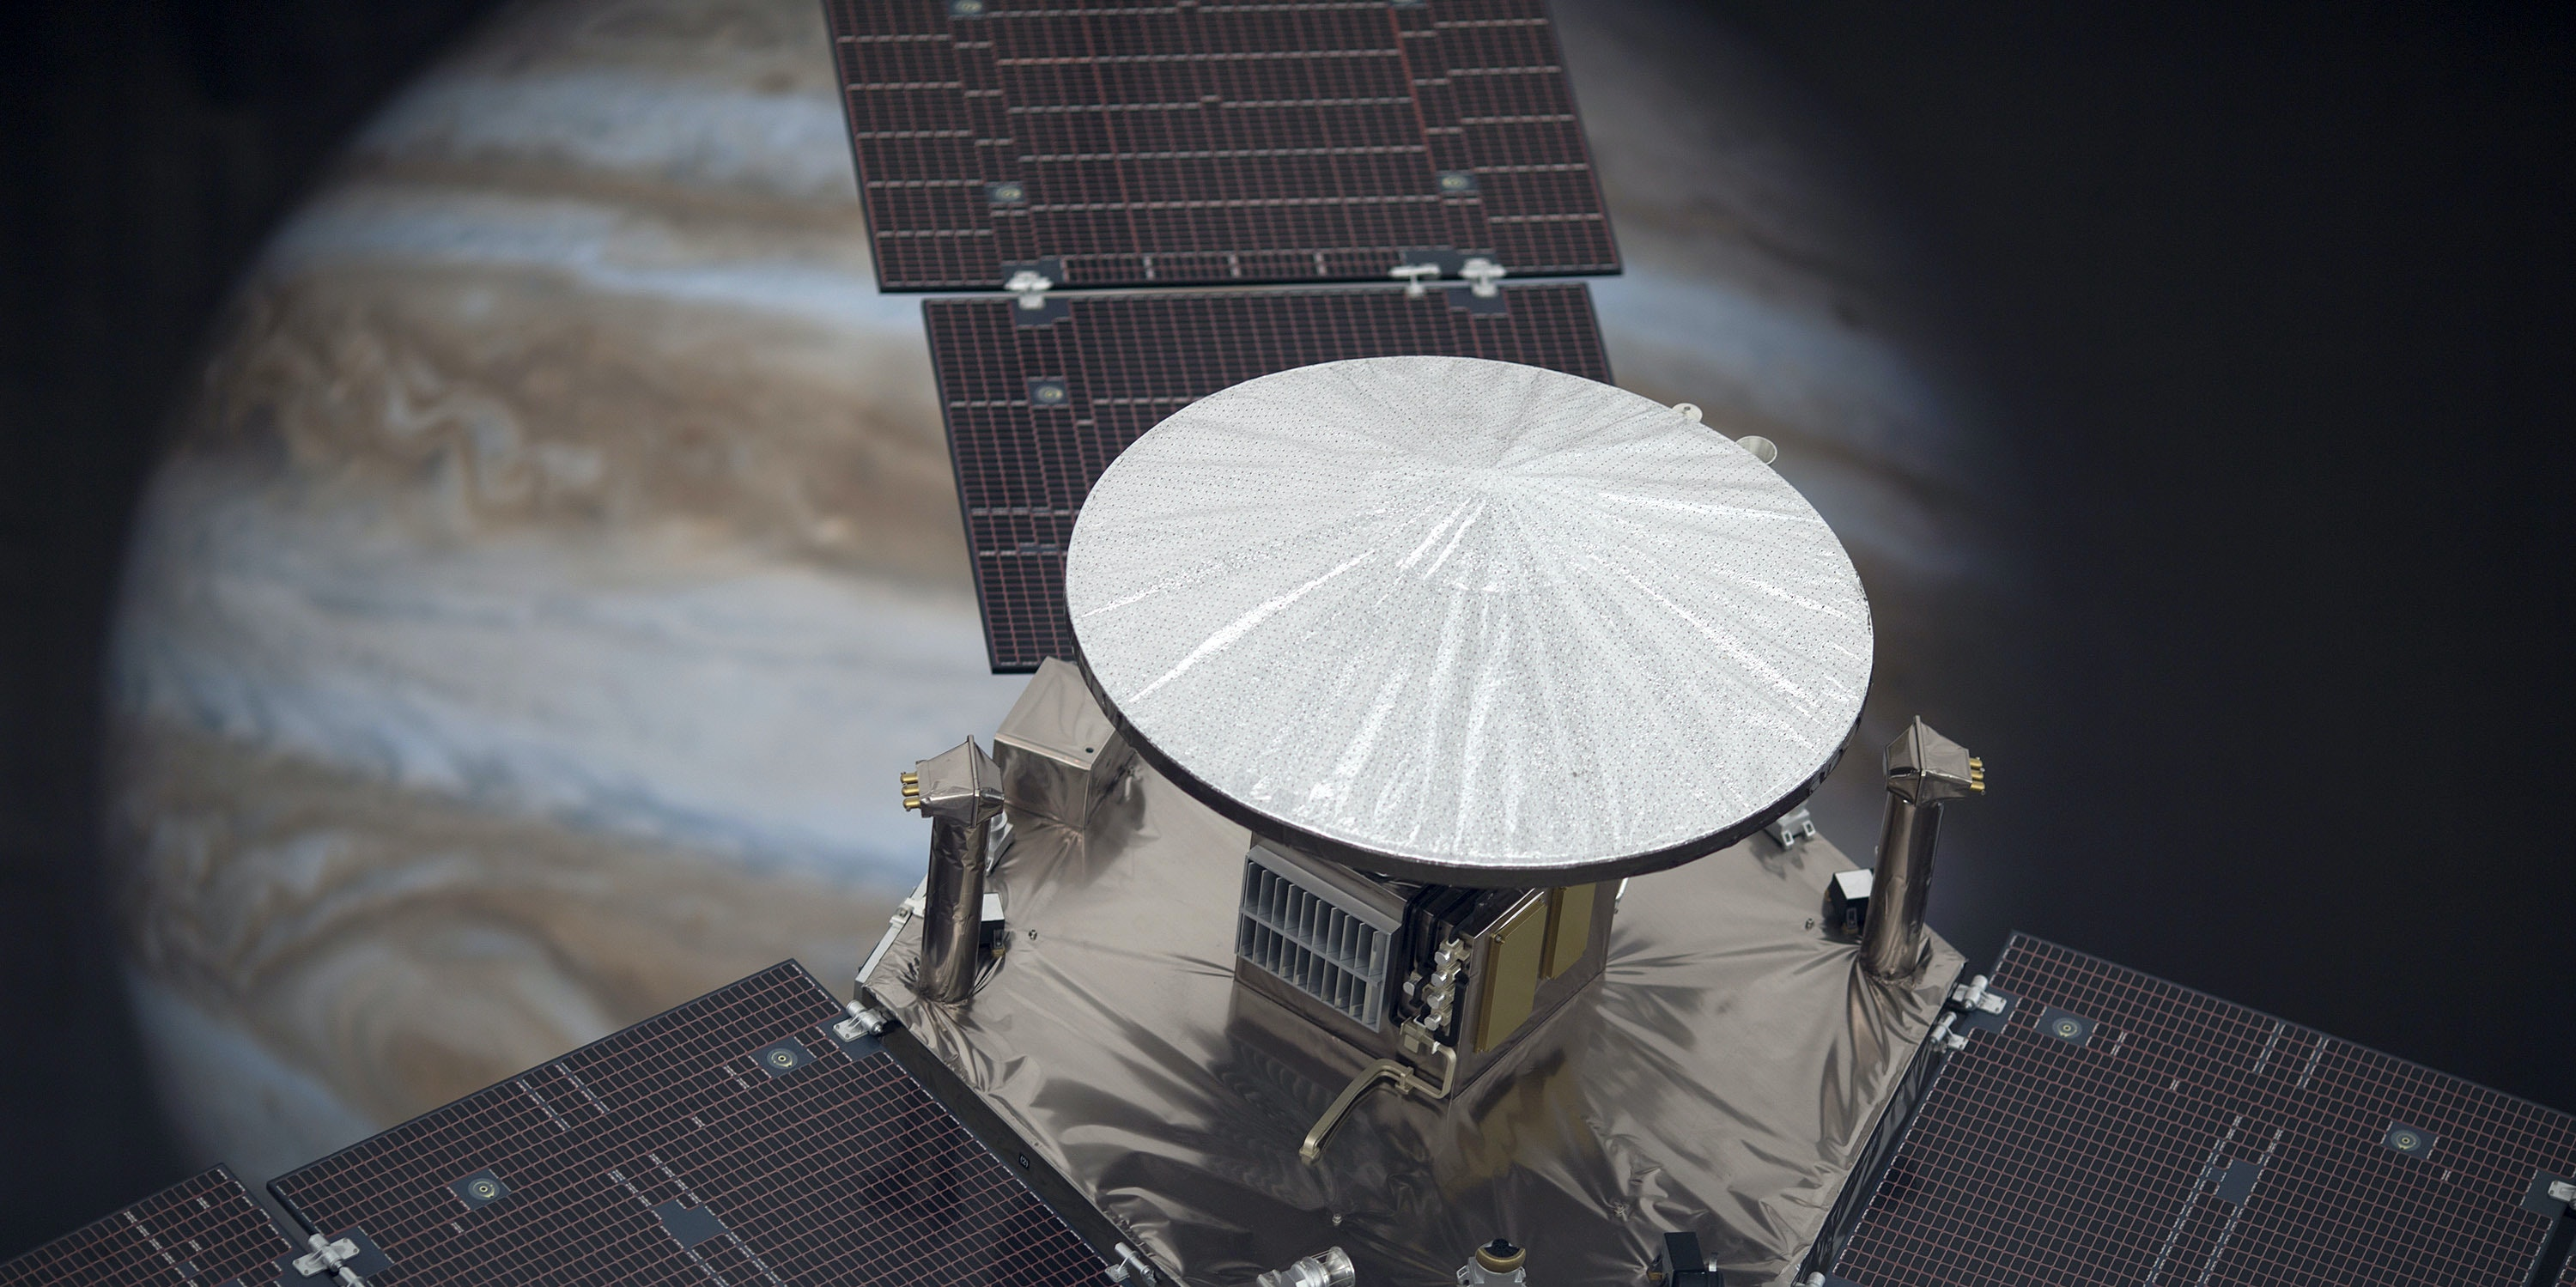 Ahead of NASA Press Conference, Questions Linger About Juno | Inverse